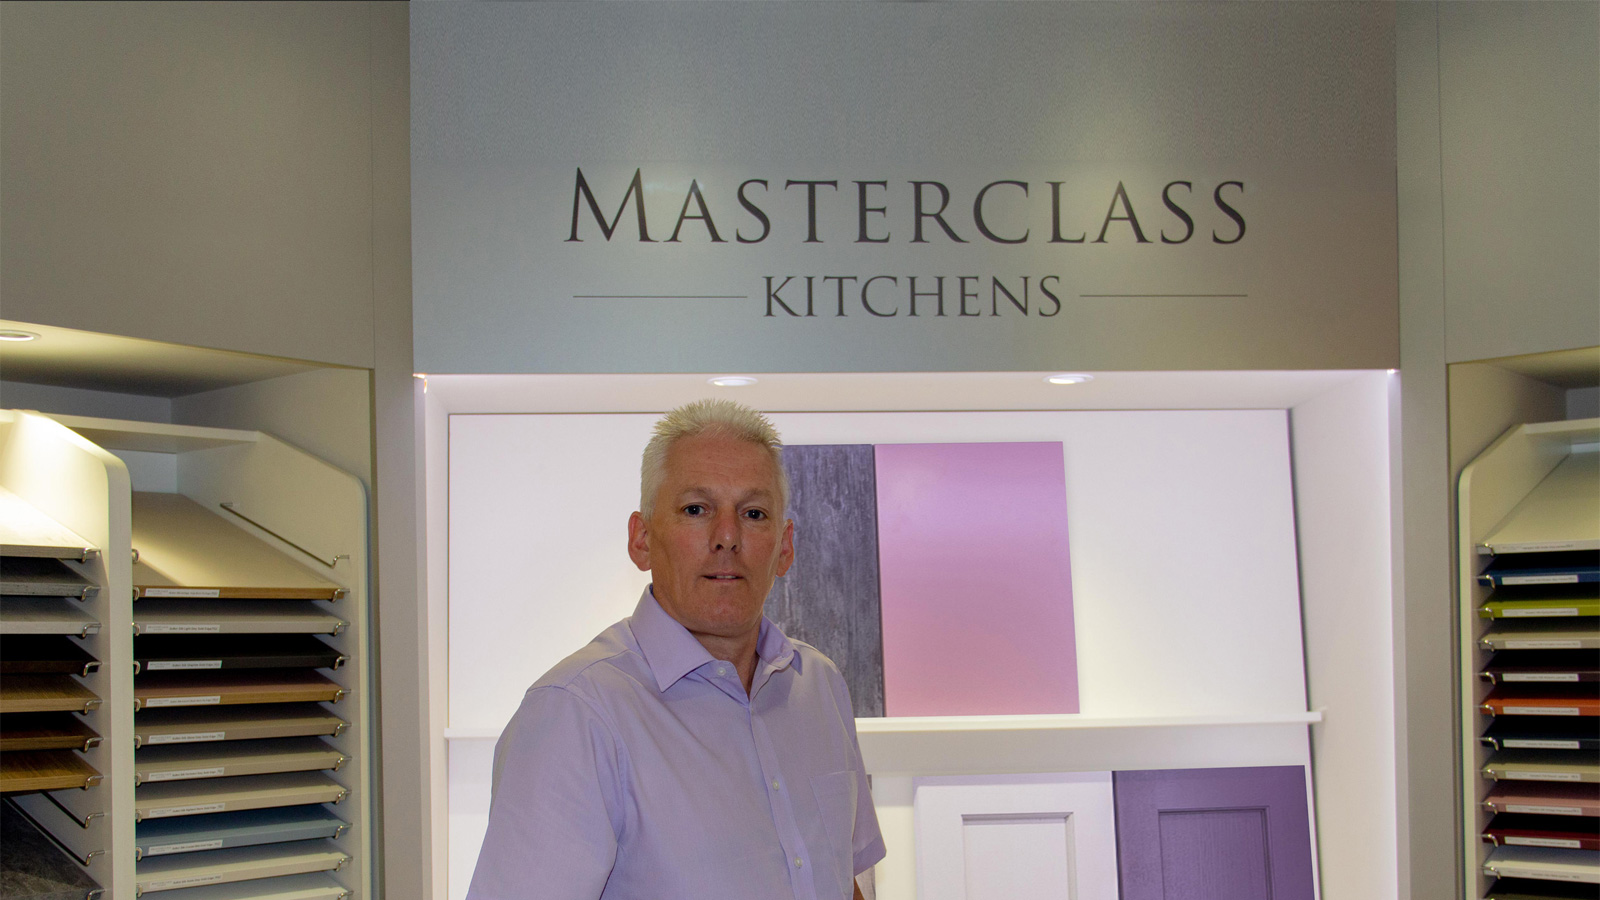 Masterclass Kitchens expands